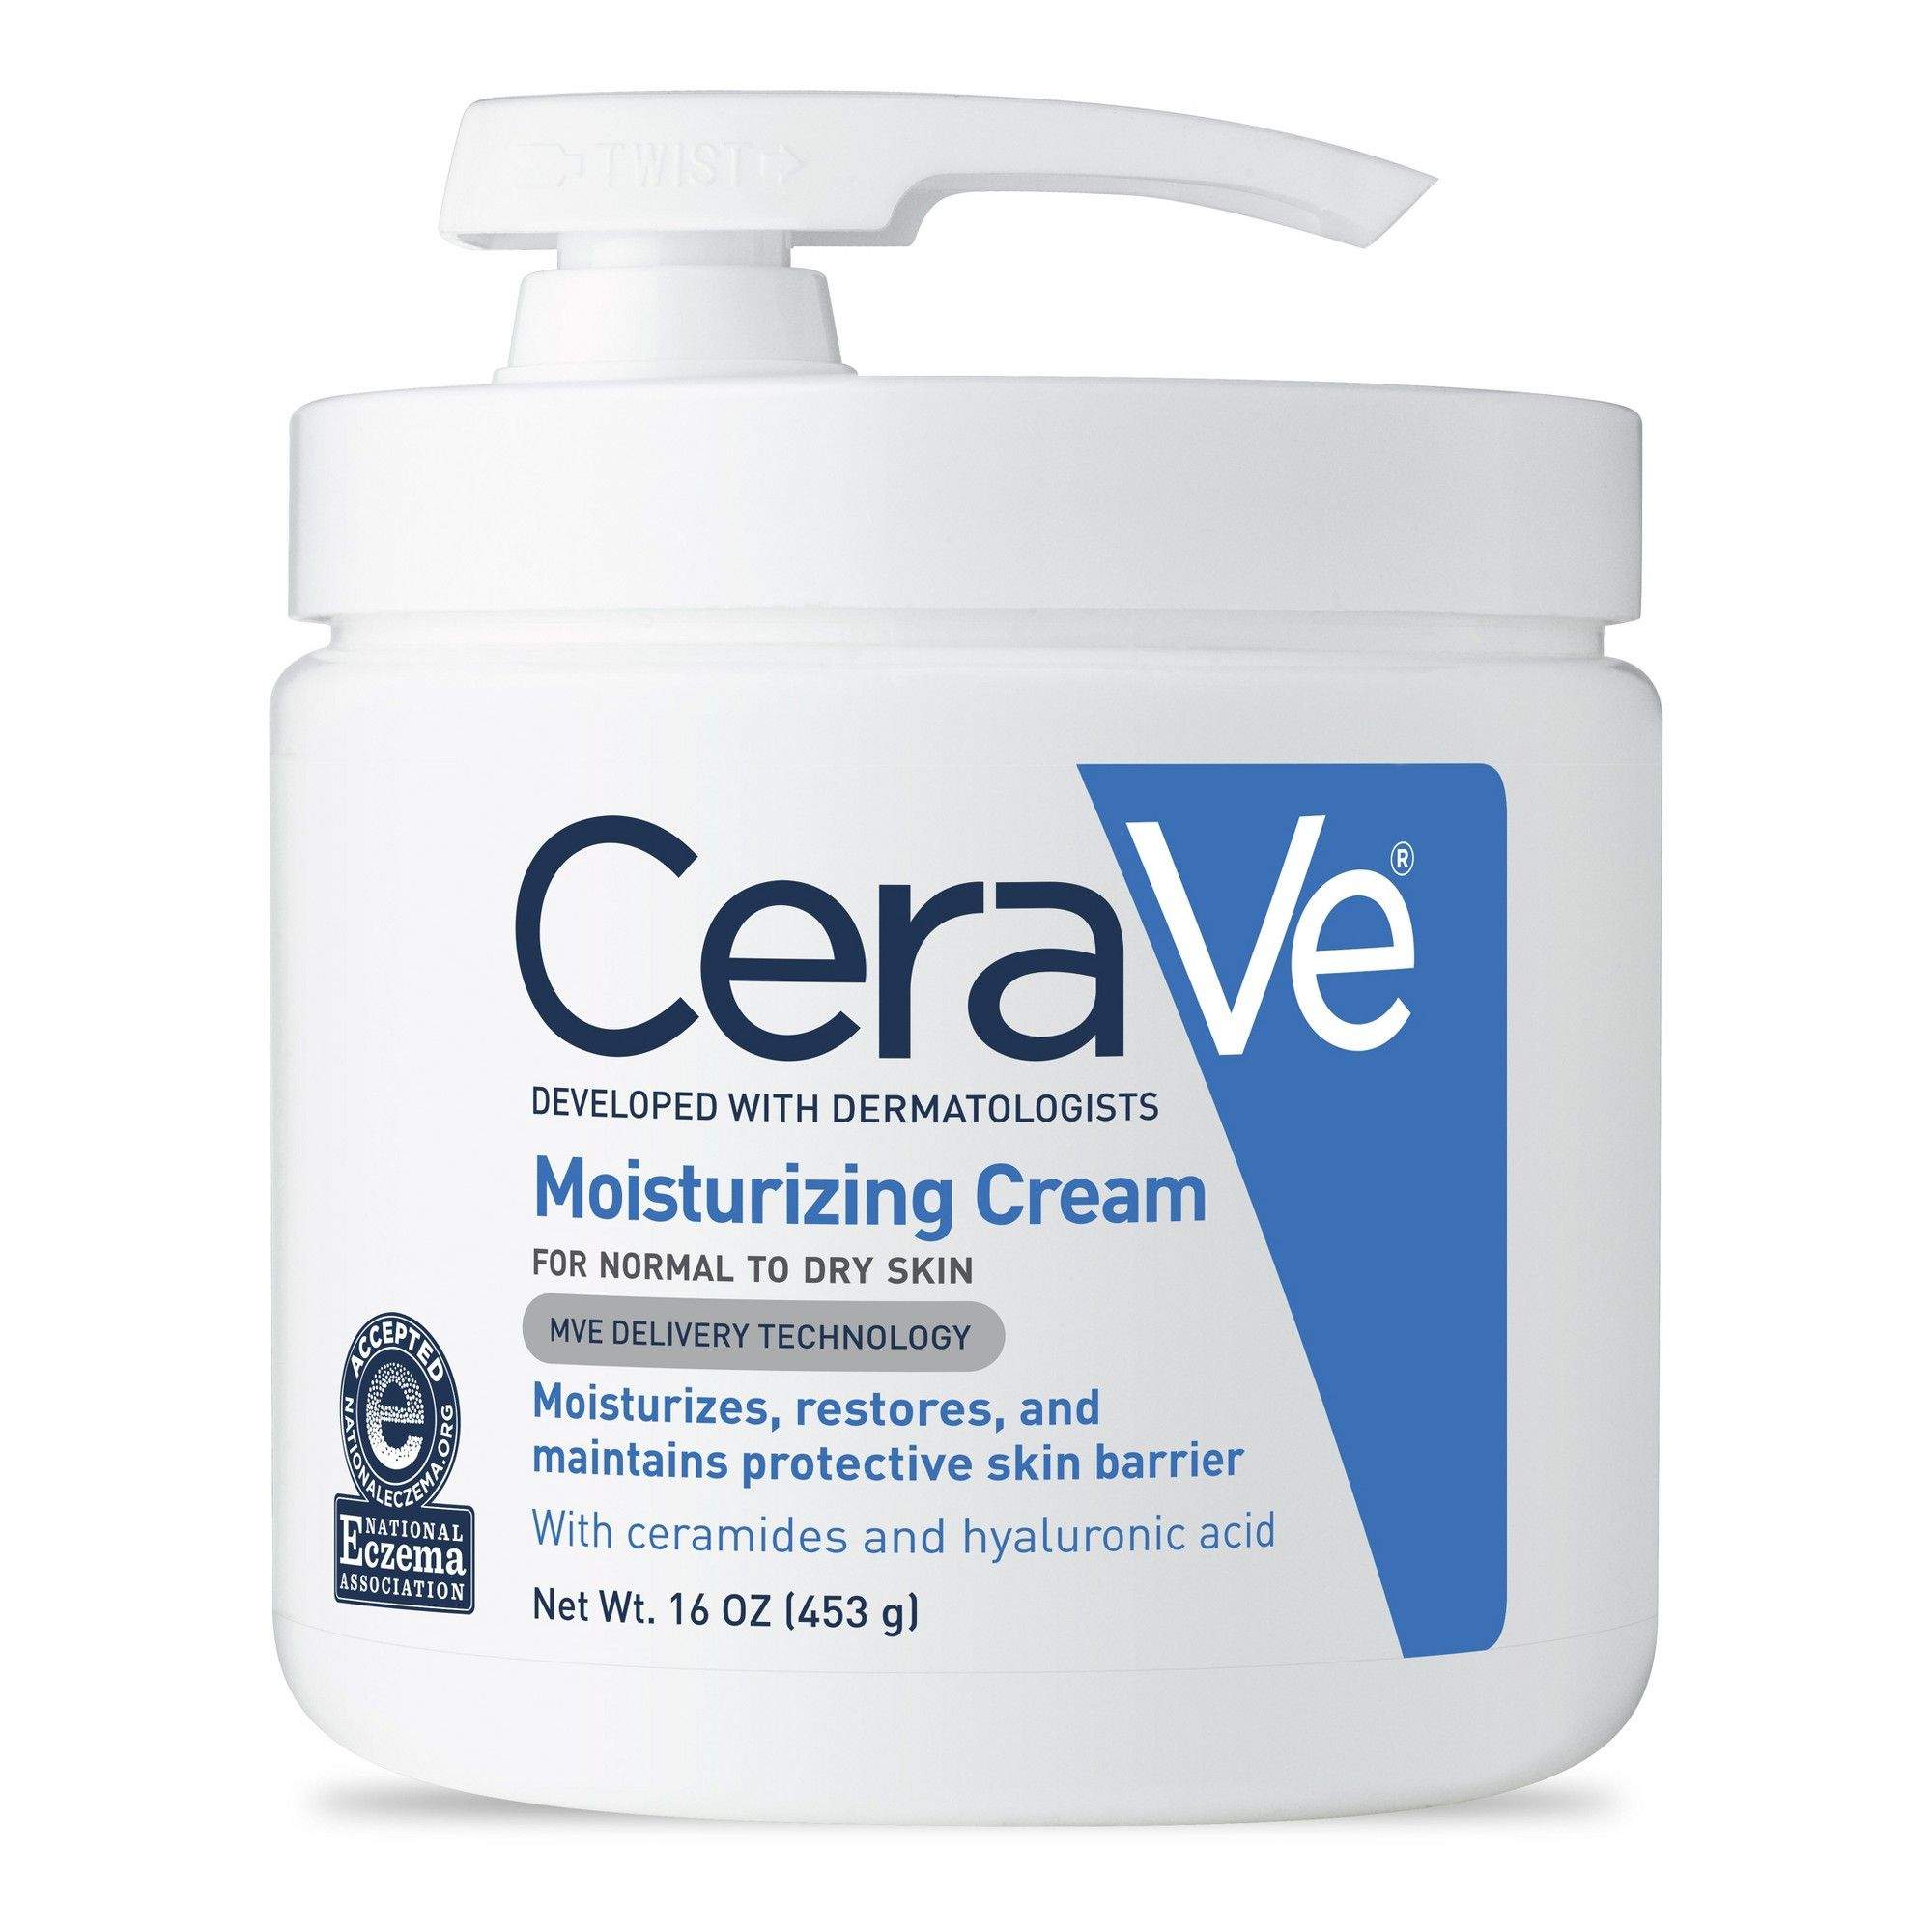 CeraVe Moisturizing Cream for Normal to Dry Skin 16oz